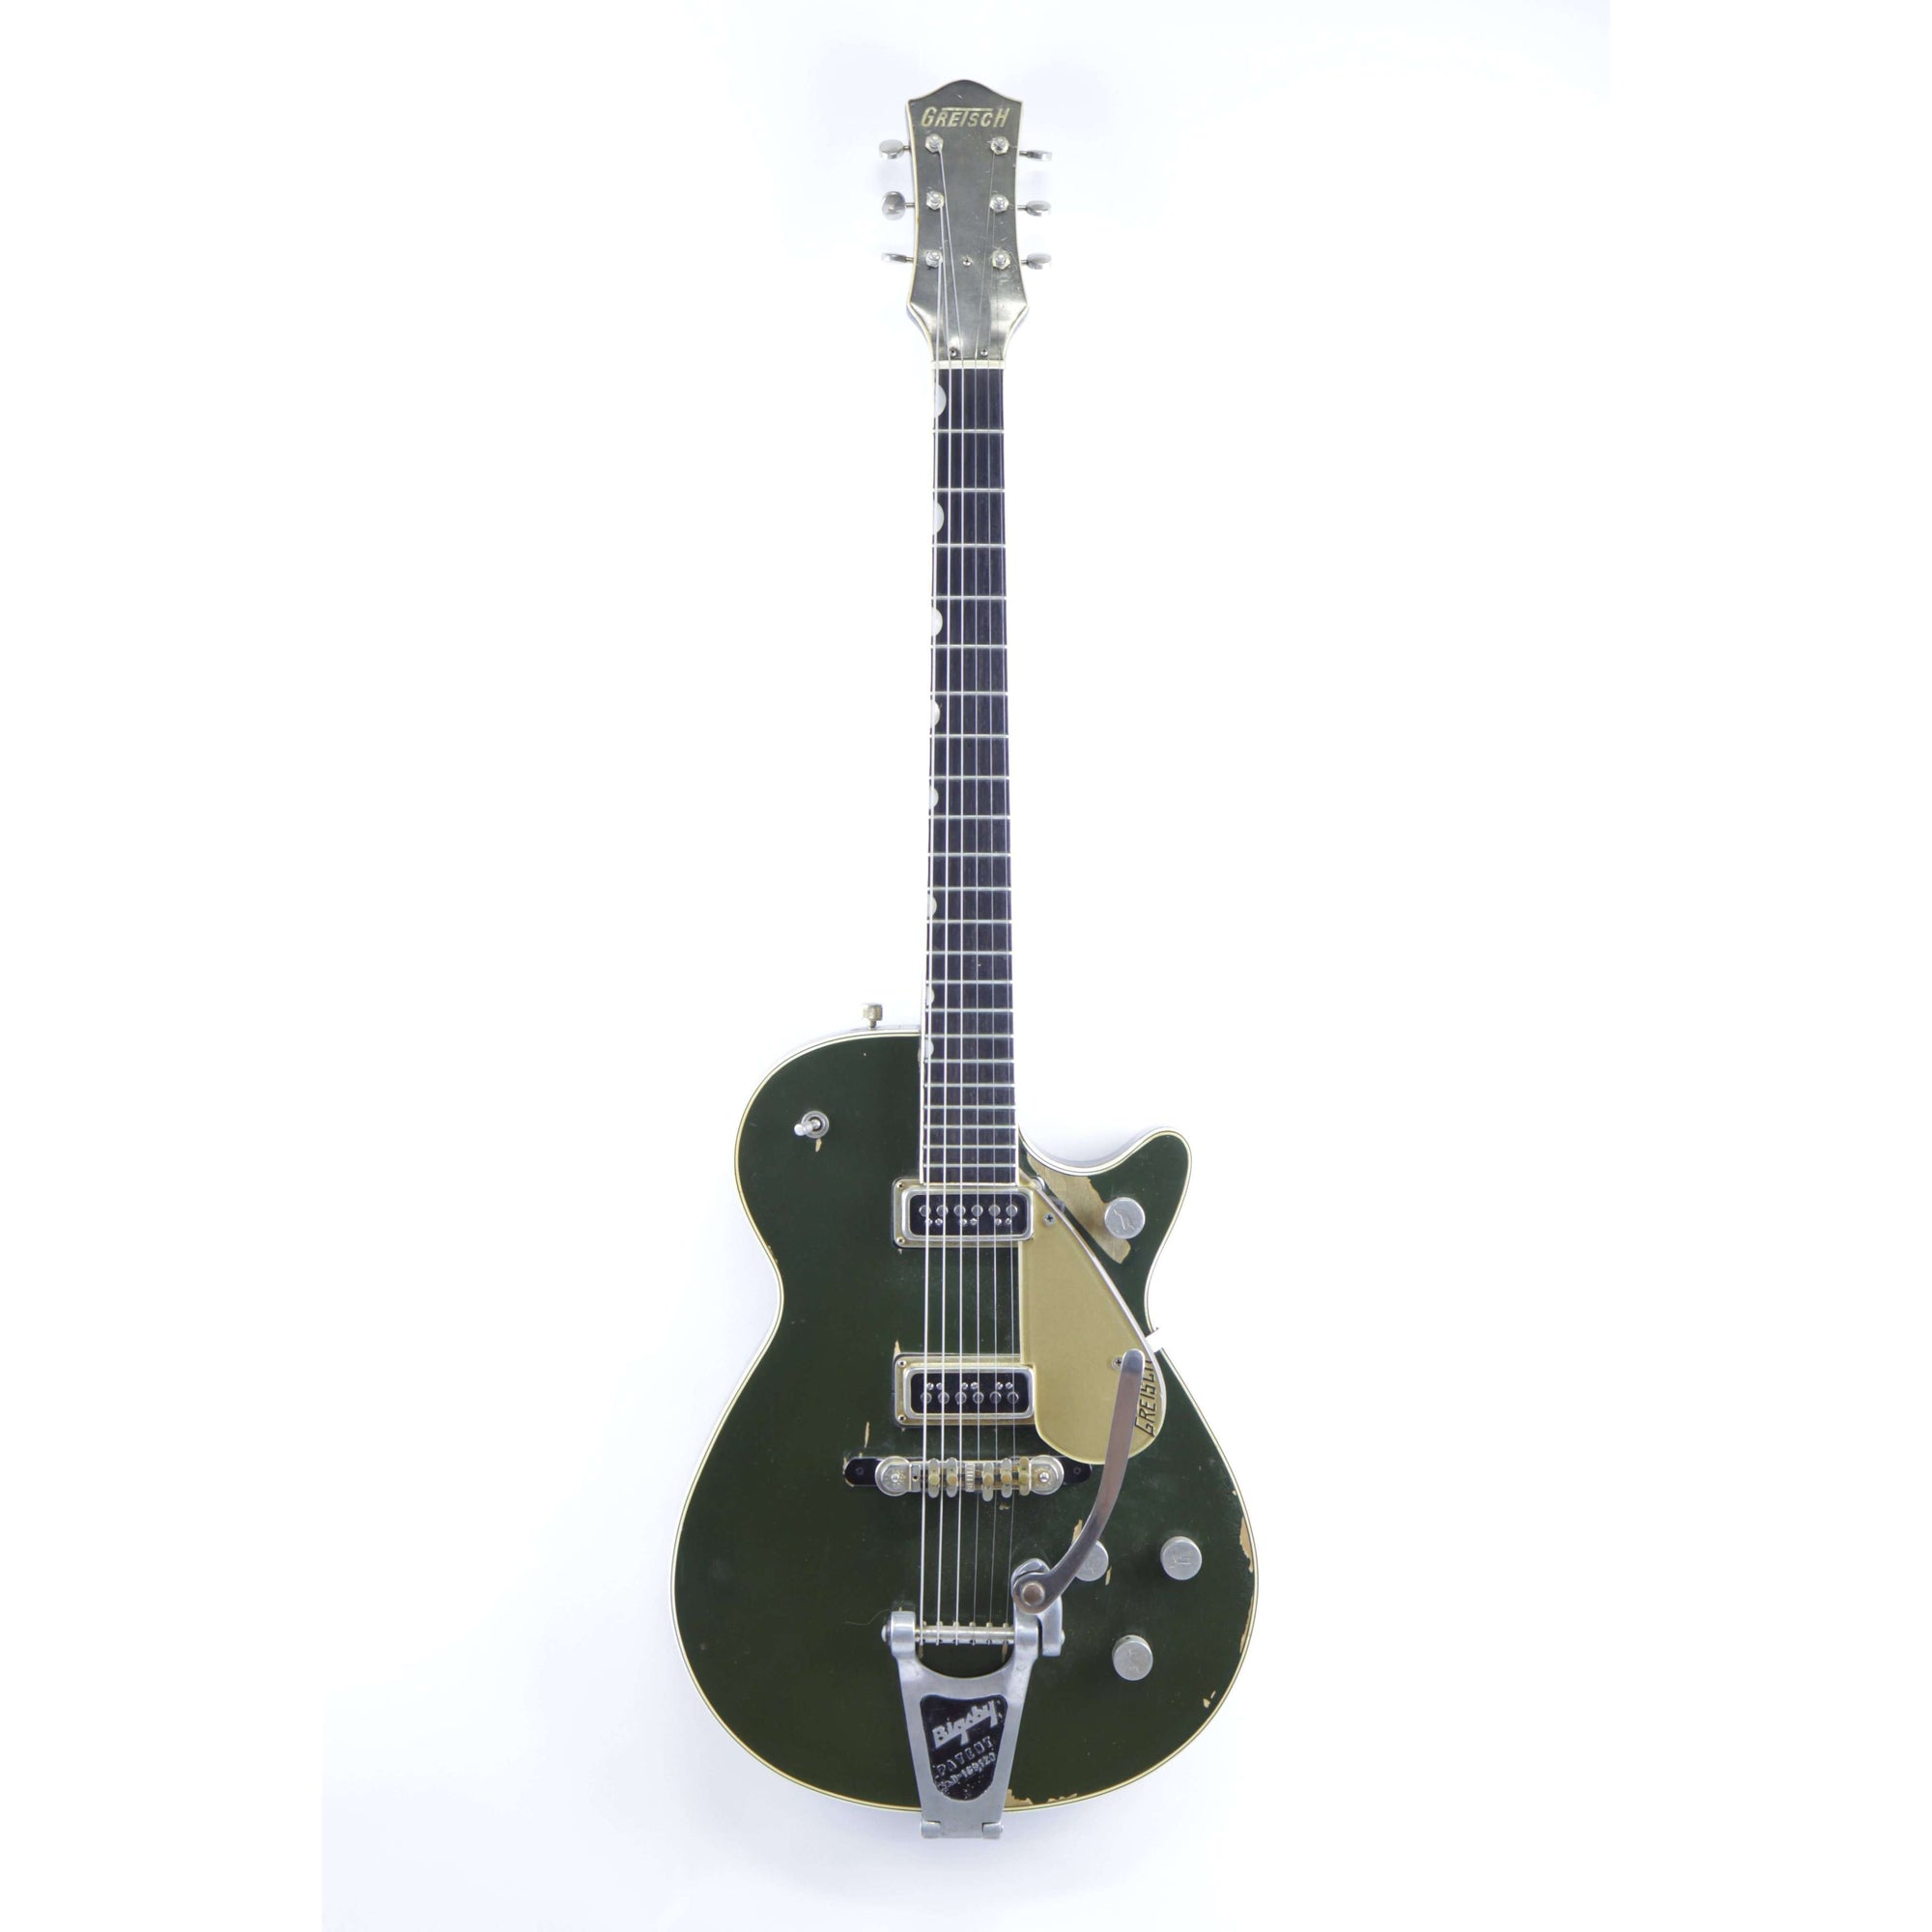 Gretsch 6128 Cadillac Green (early 1958)